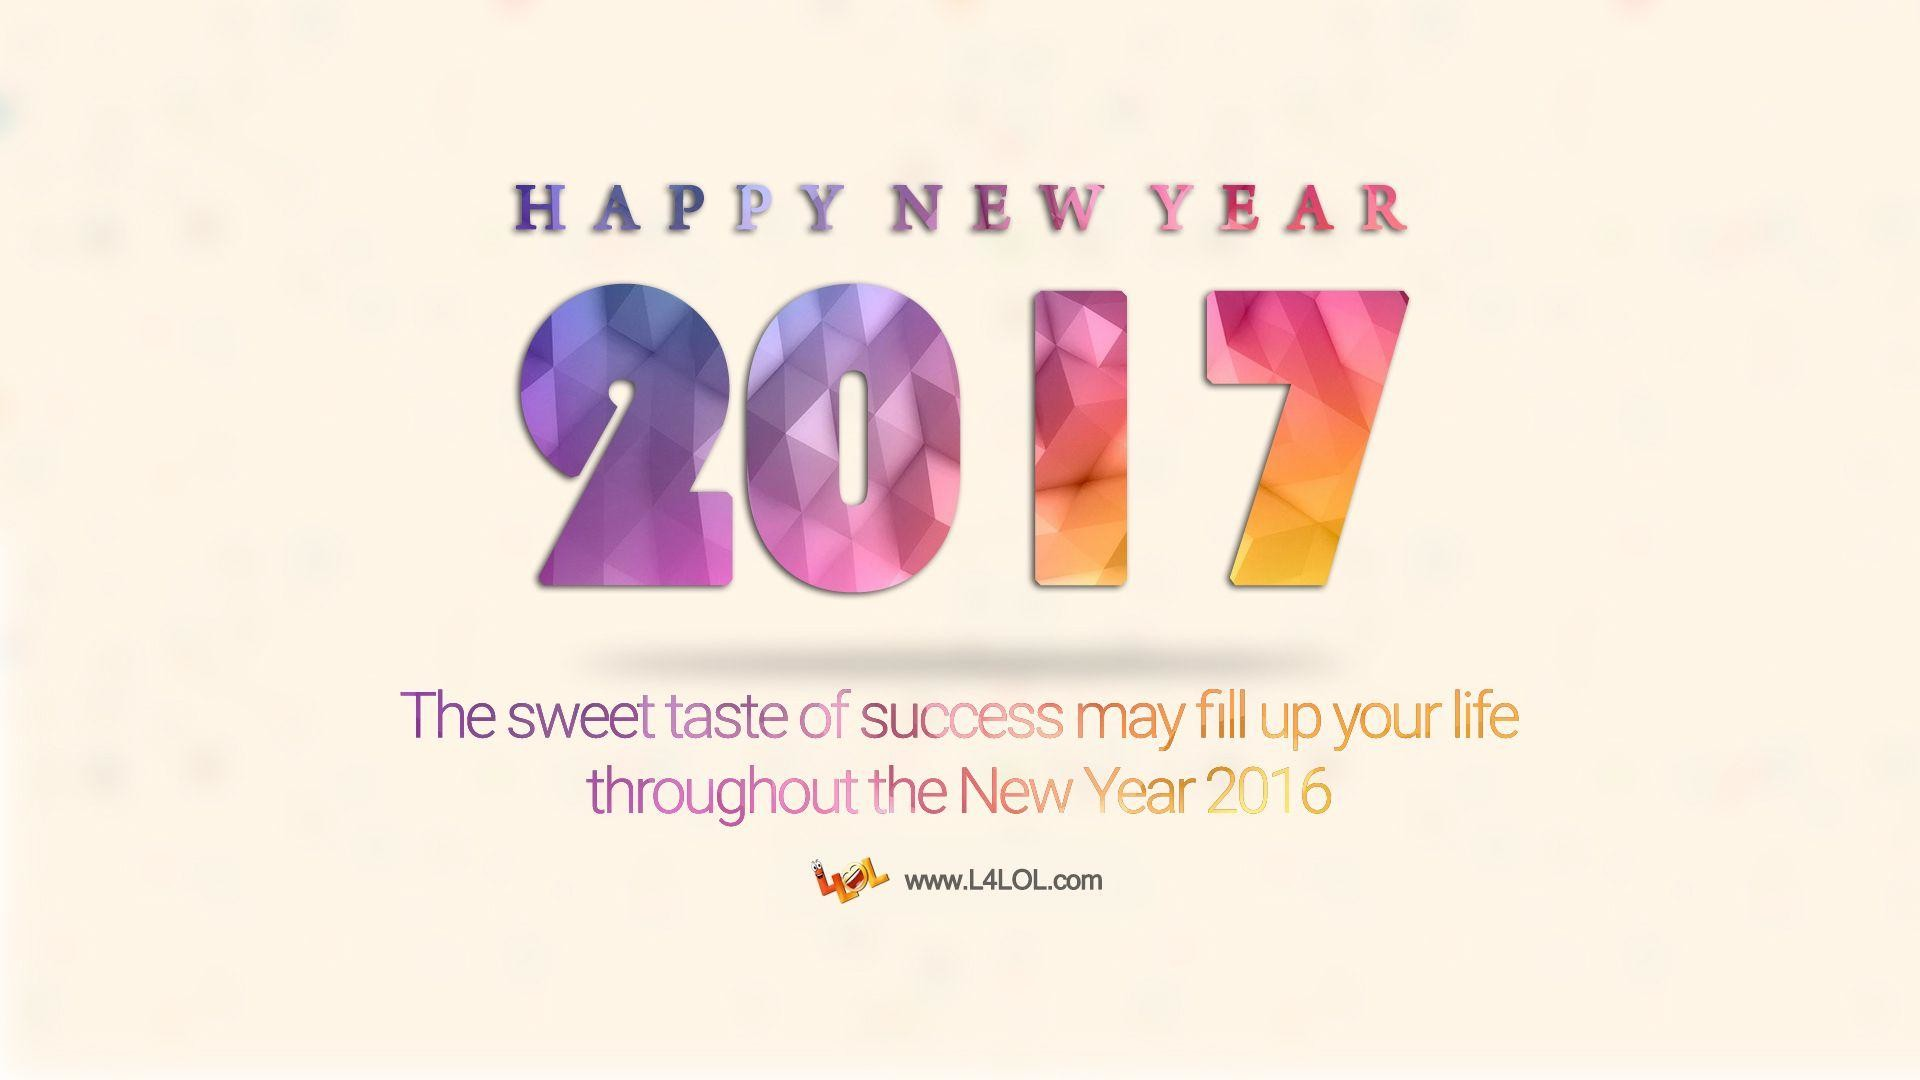 Happy New Year Pictures 2017 – Happy New Year 2017